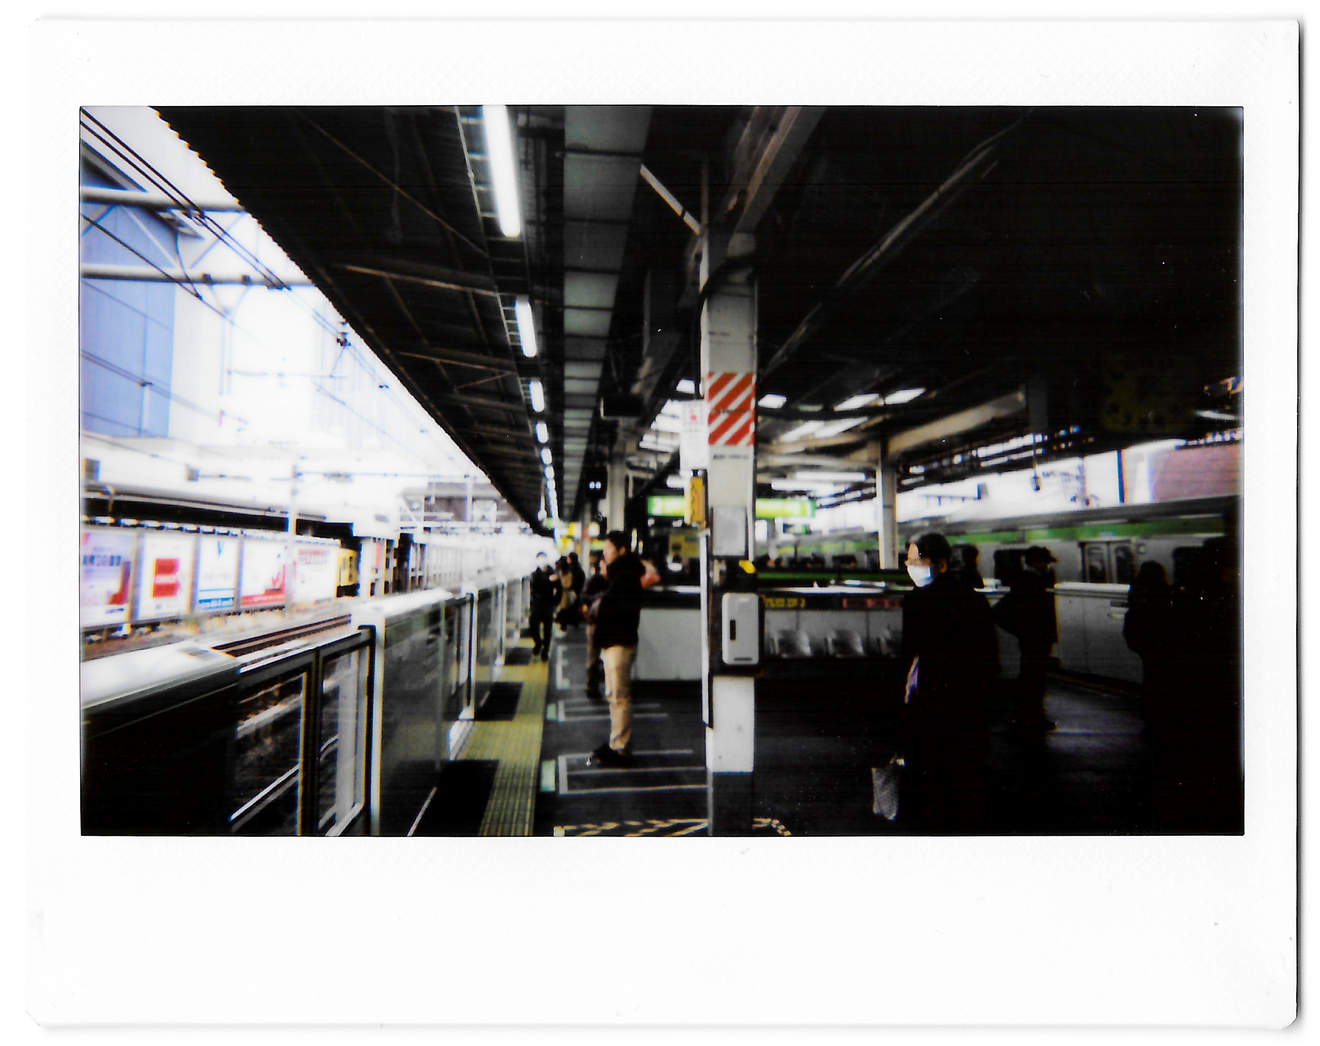 """Instant photo for Day 106 of """"A Year in an Instant"""" by Nuno Coelho Santos"""